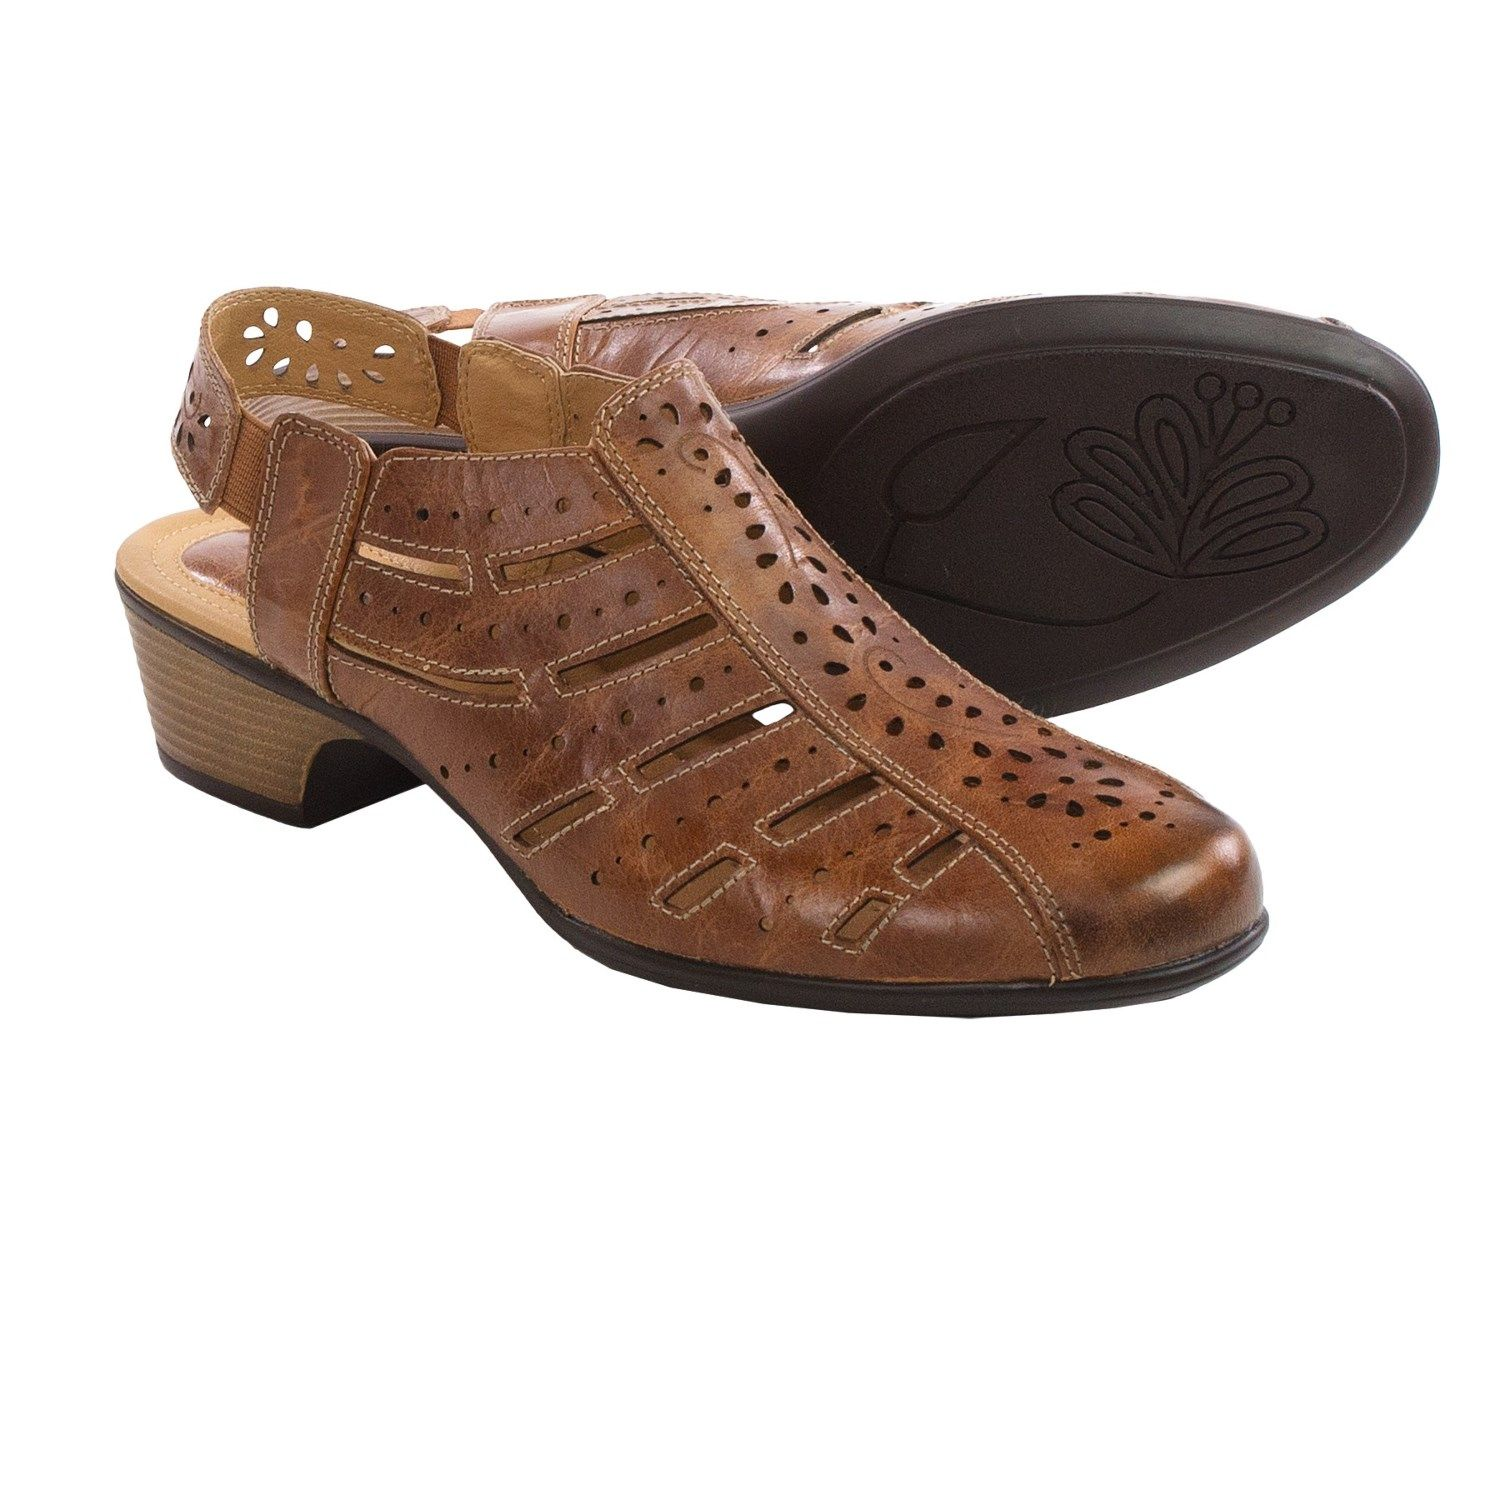 7c8165a21d1 Romika Barbados 06 Sandals - Leather, Closed Toe (For Women ...